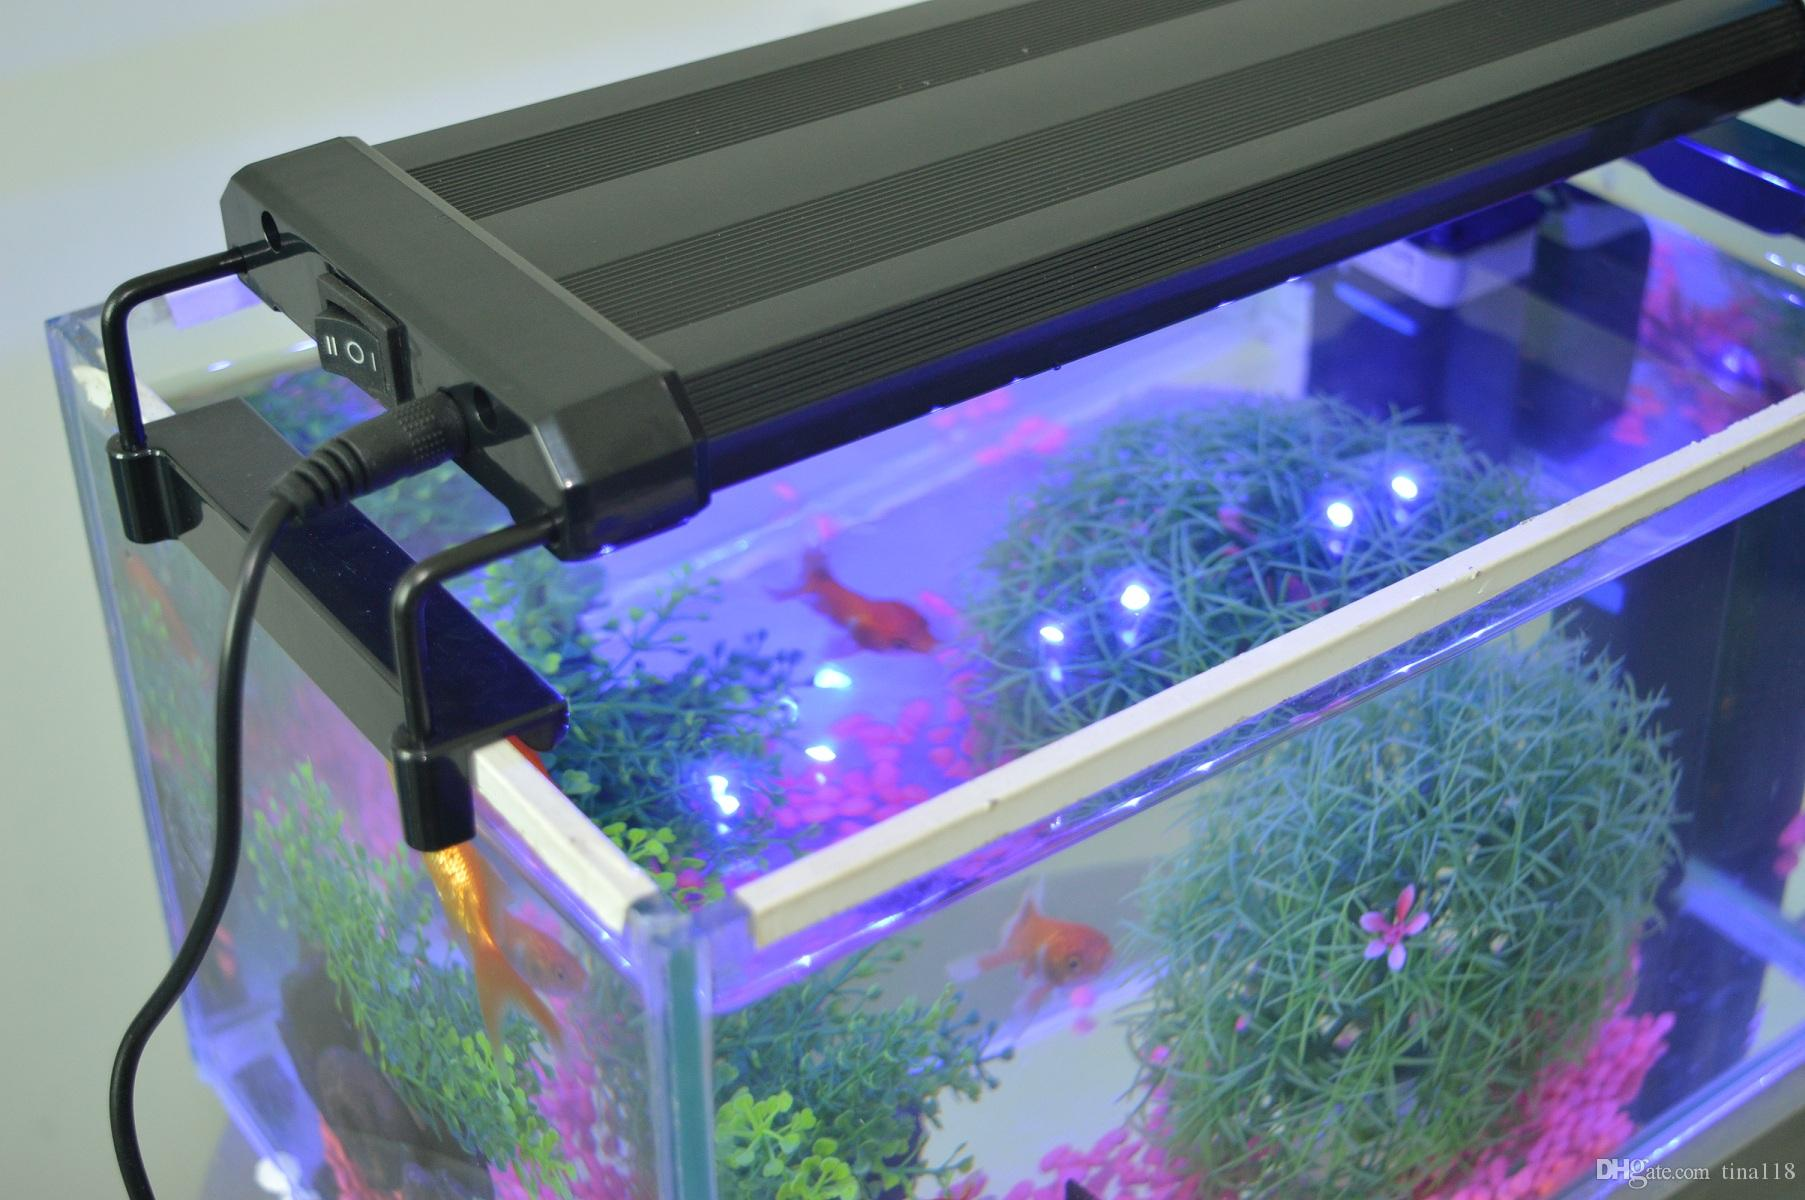 Fish tank lights for sale - Hotest Sale The Trend Of A New Generation Of Aquarium Lights Zjl 60a Aquarium Bracket Led Light With High Quality